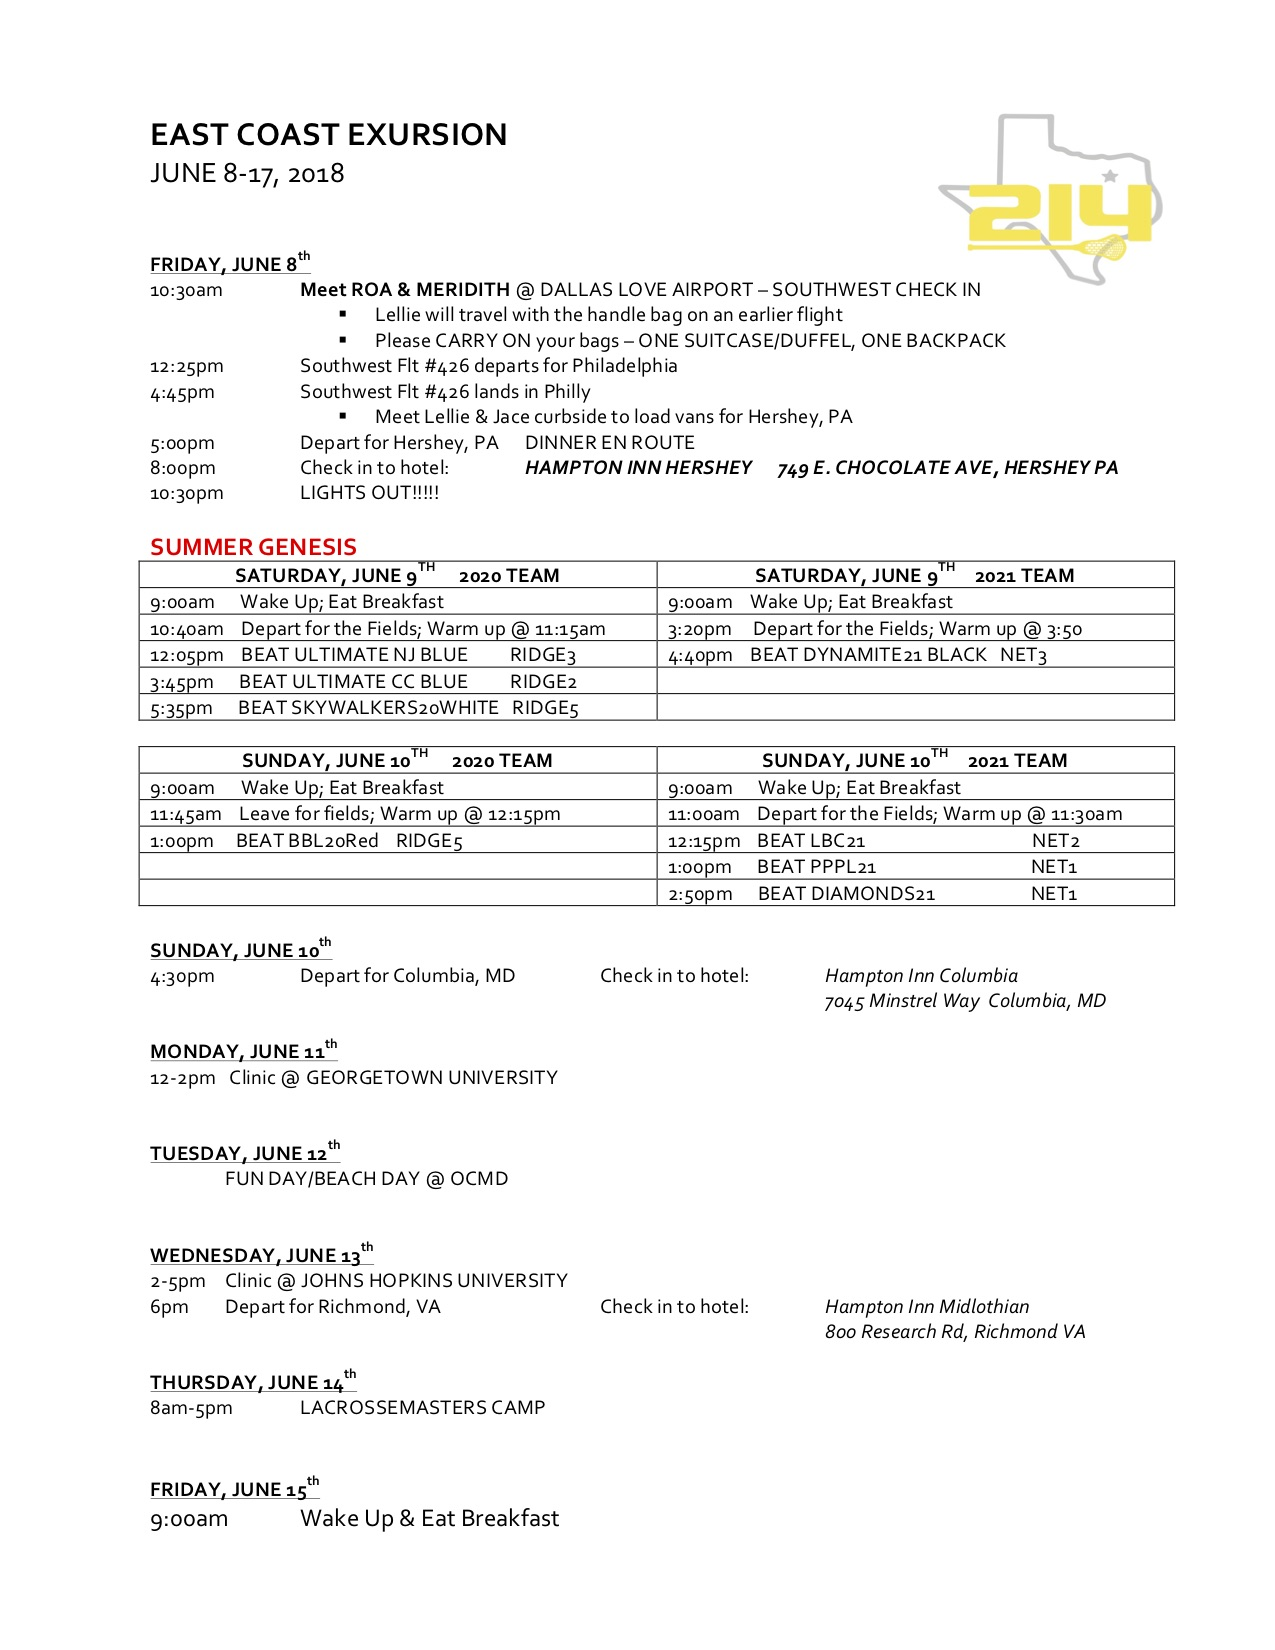 pg1-v4-214LC EAST COAST EXCURSION Itinerary v4.jpg